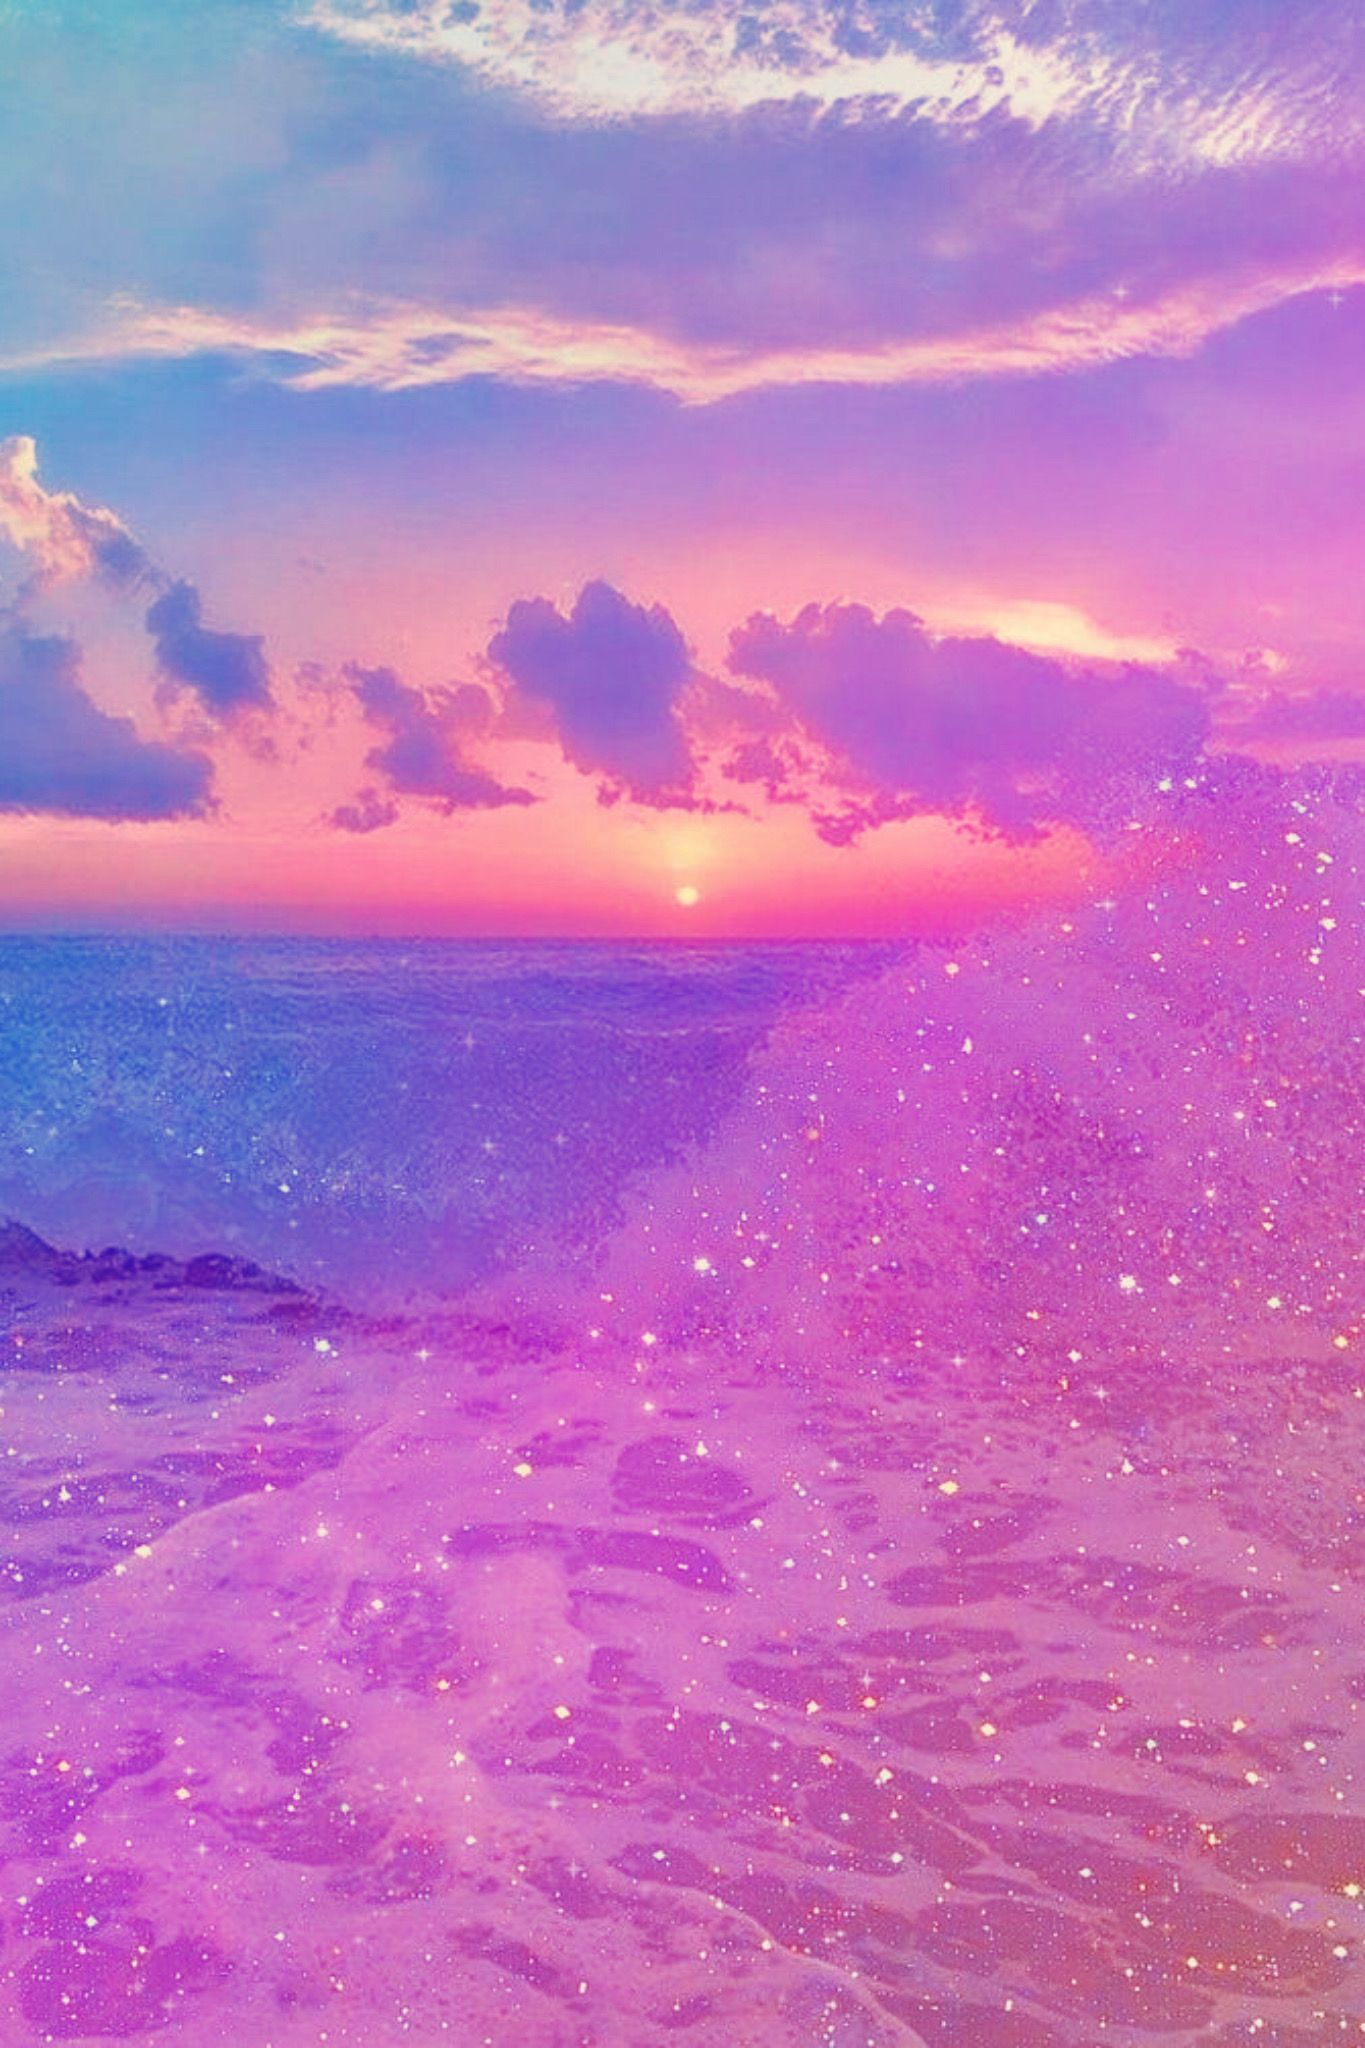 Pin By Jacqlina On Beautiful Wallpapers In 2021 Purple Galaxy Wallpaper Pink And Purple Wallpaper Pink Wallpaper Backgrounds Iphone pink and purple sky wallpaper